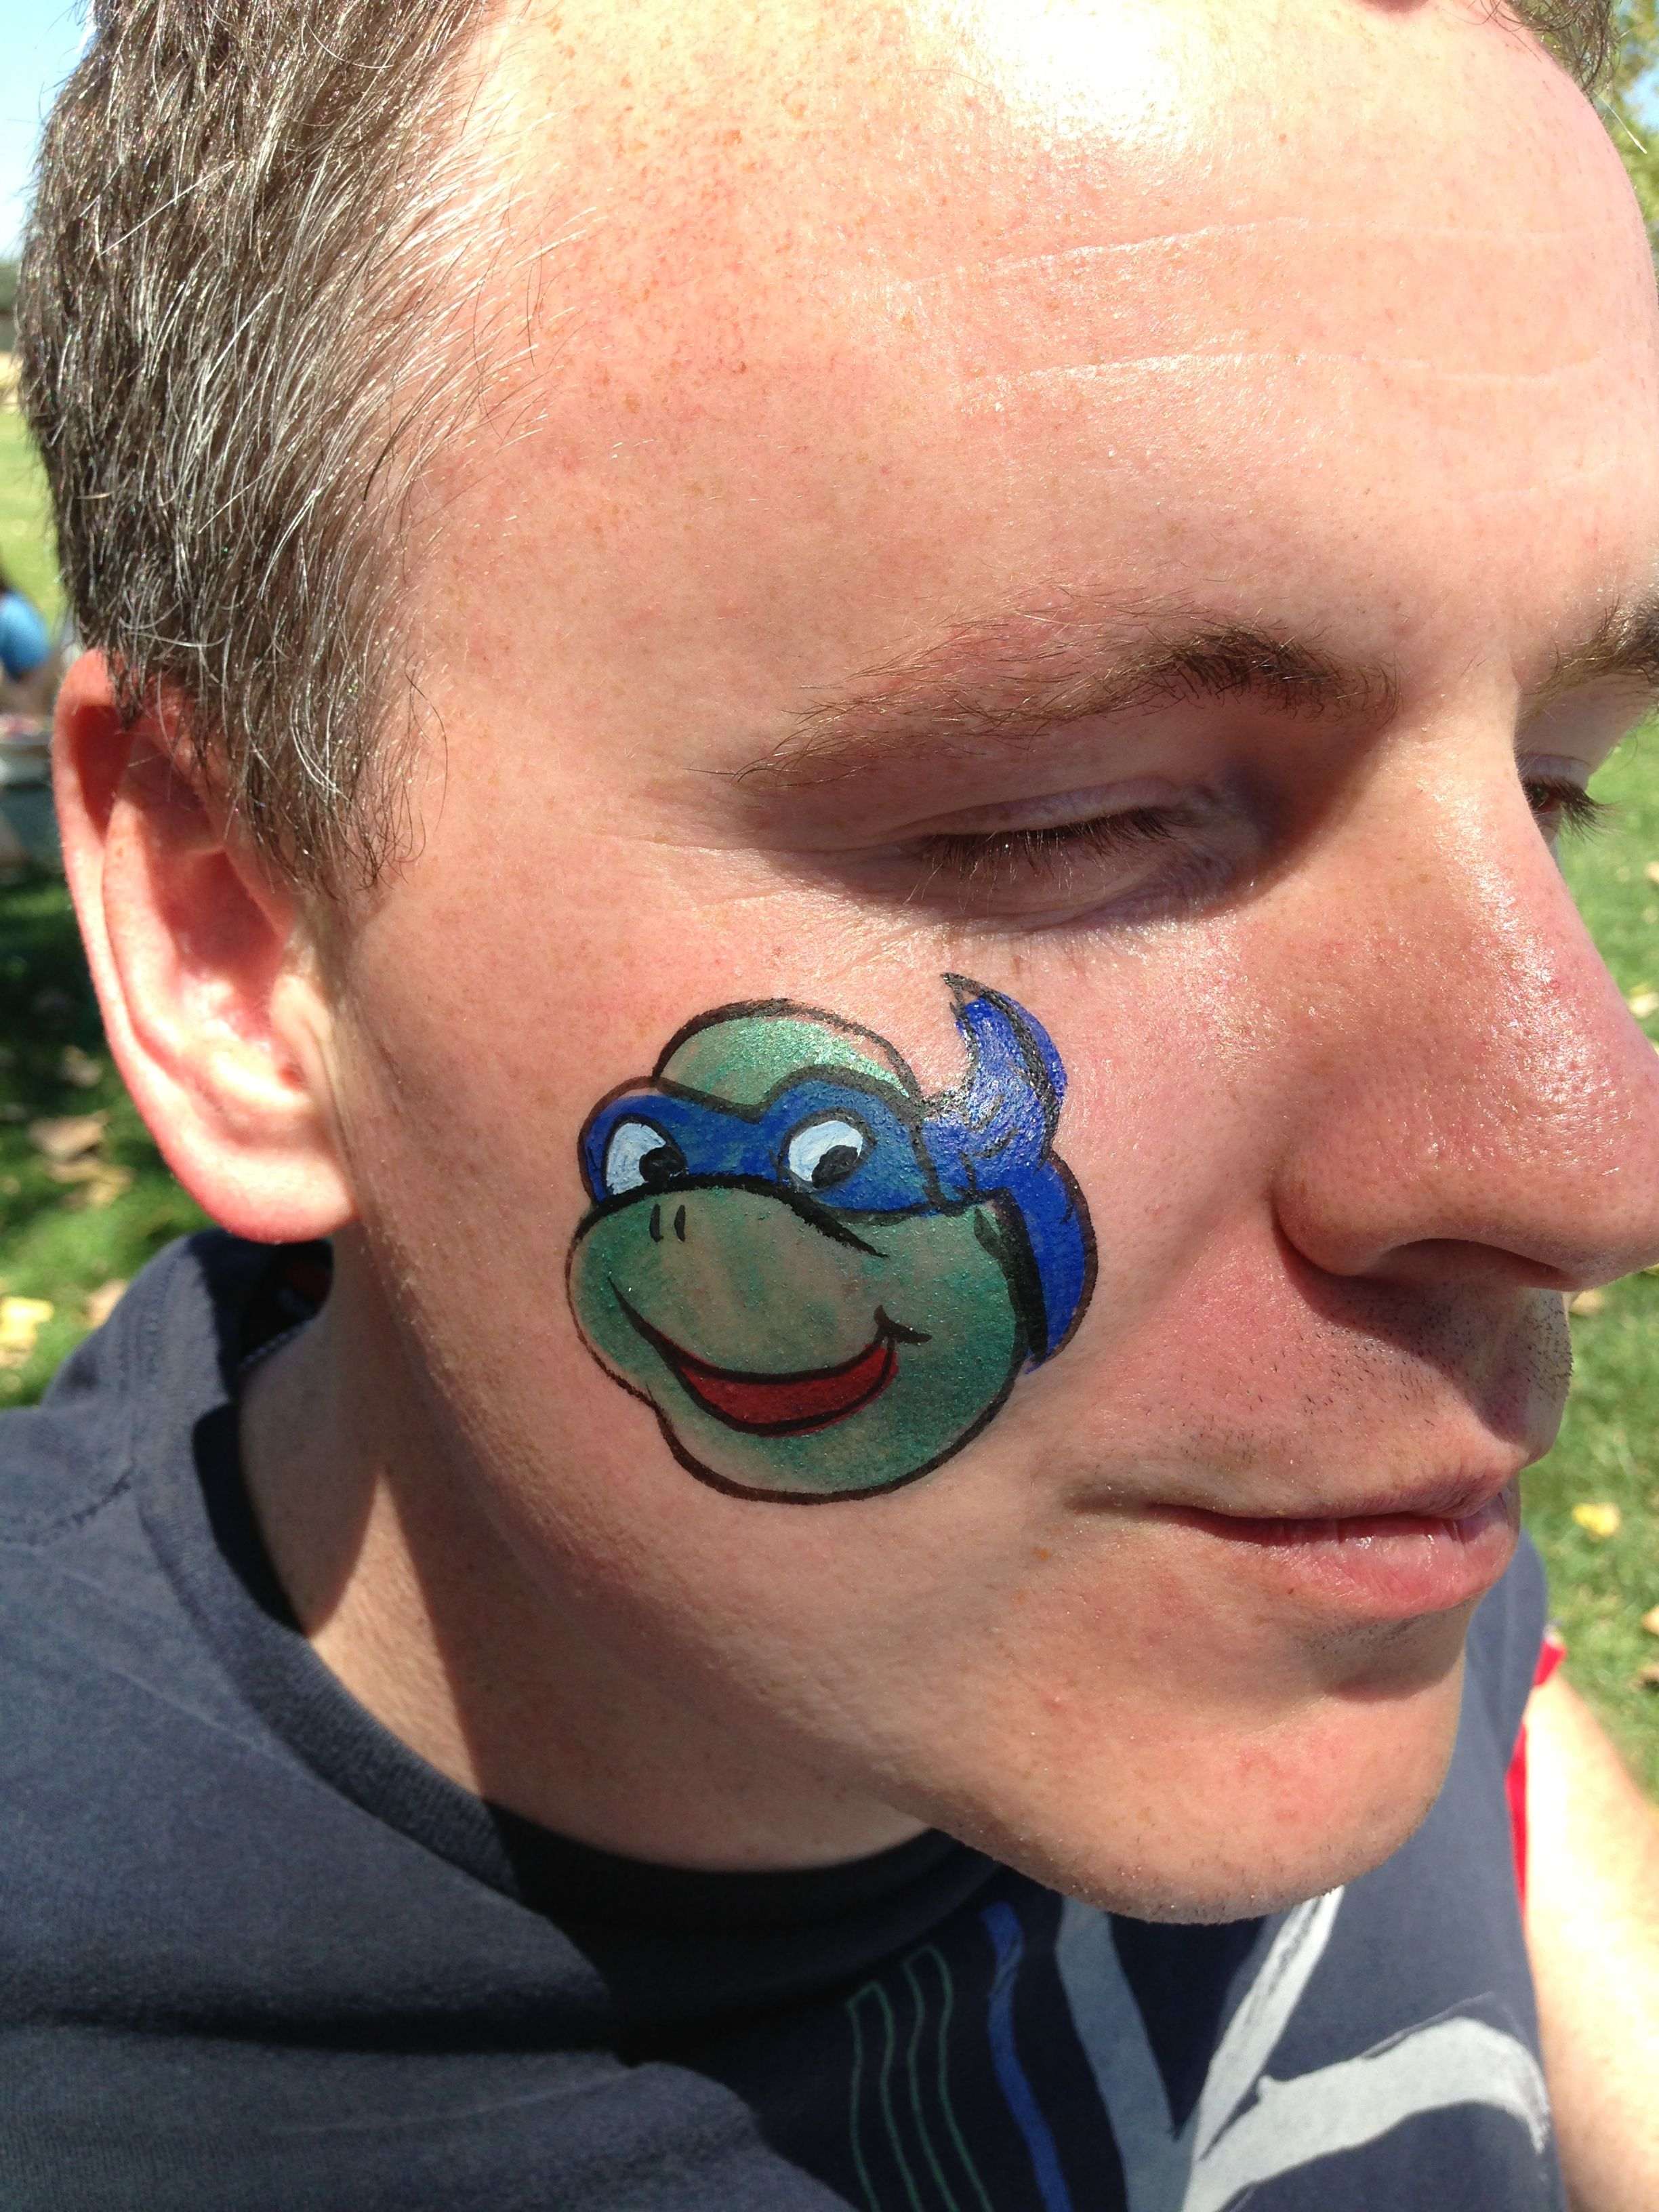 Teenage mutant ninja turtle face painting from the magic for Face painting clowns for birthday parties